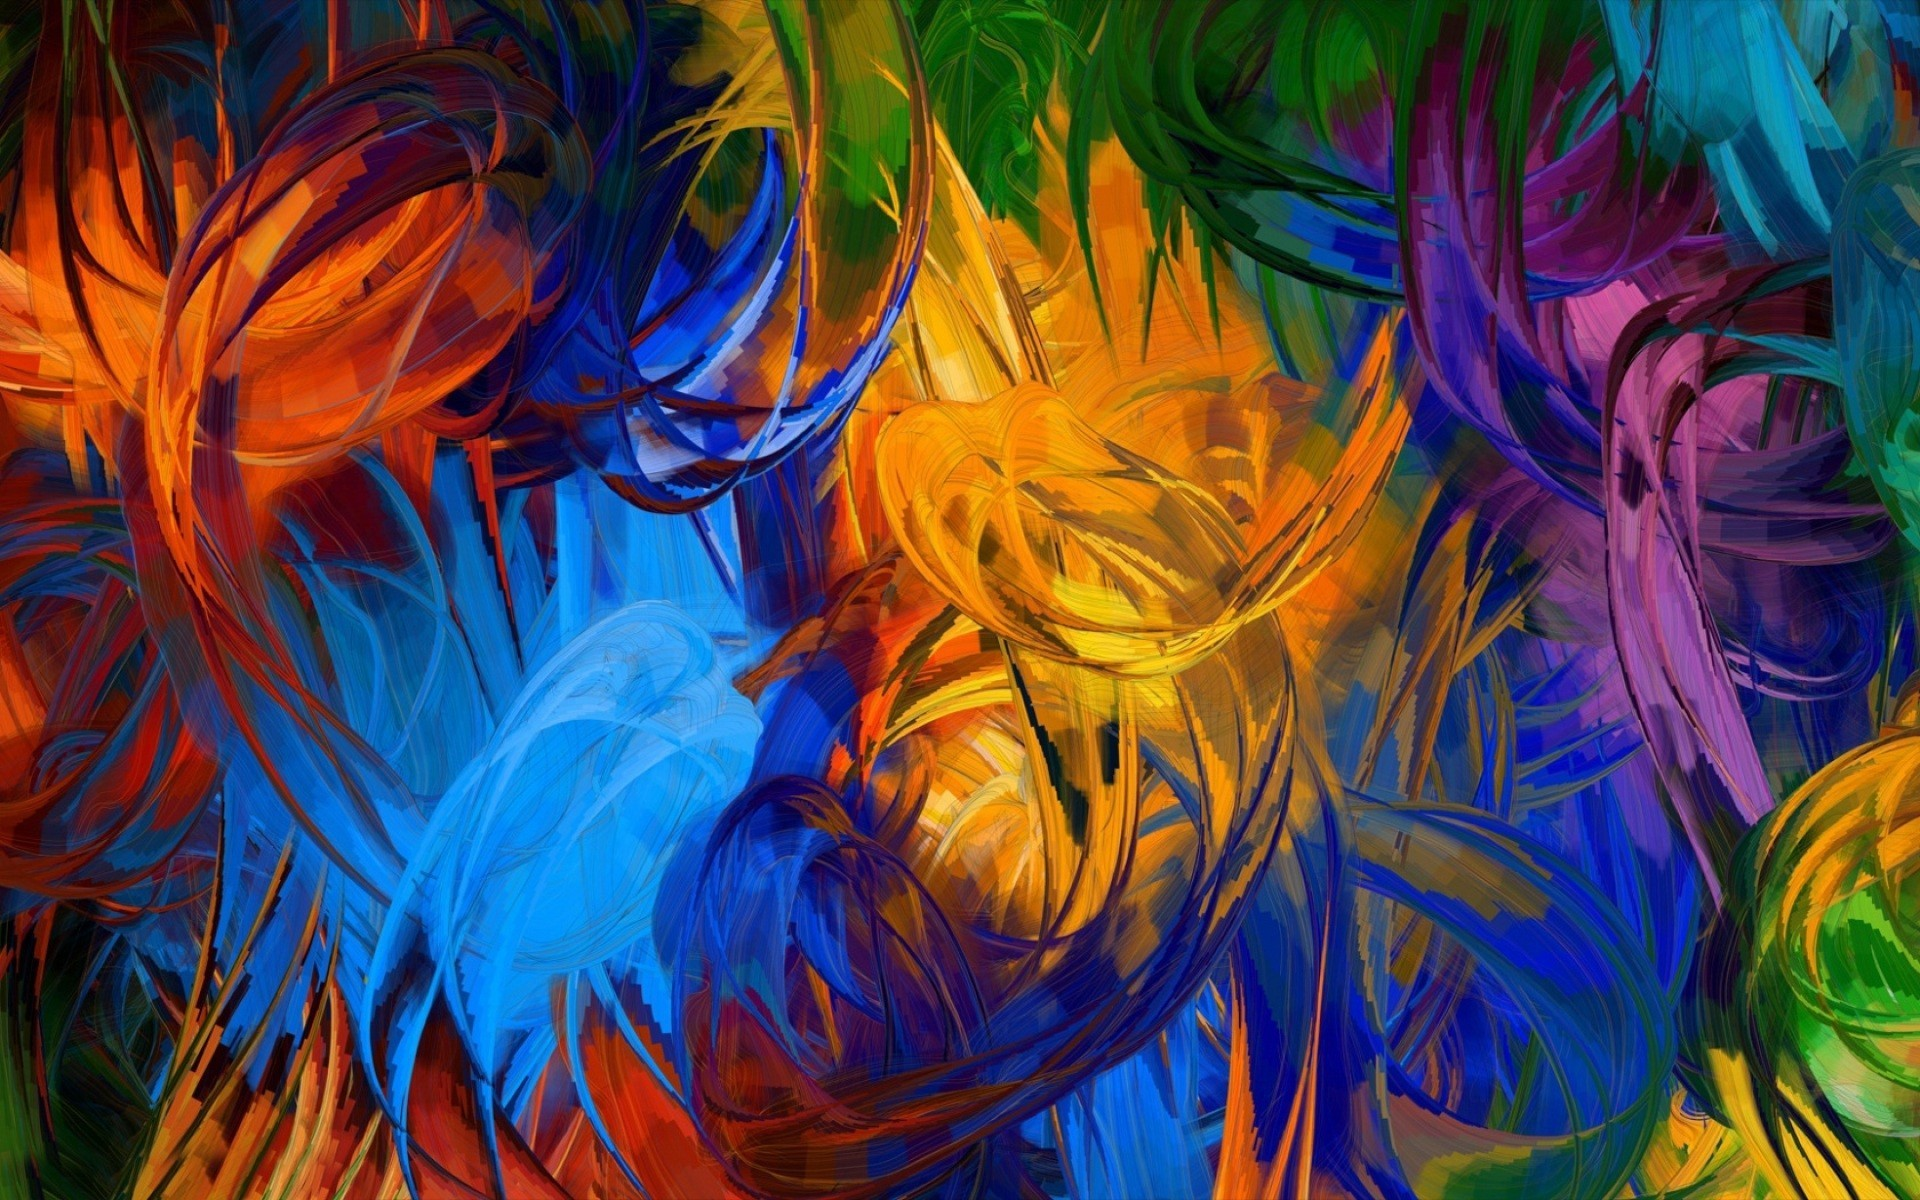 Abstract Brush And Paint Wallpaper Download 7479 1920x1200